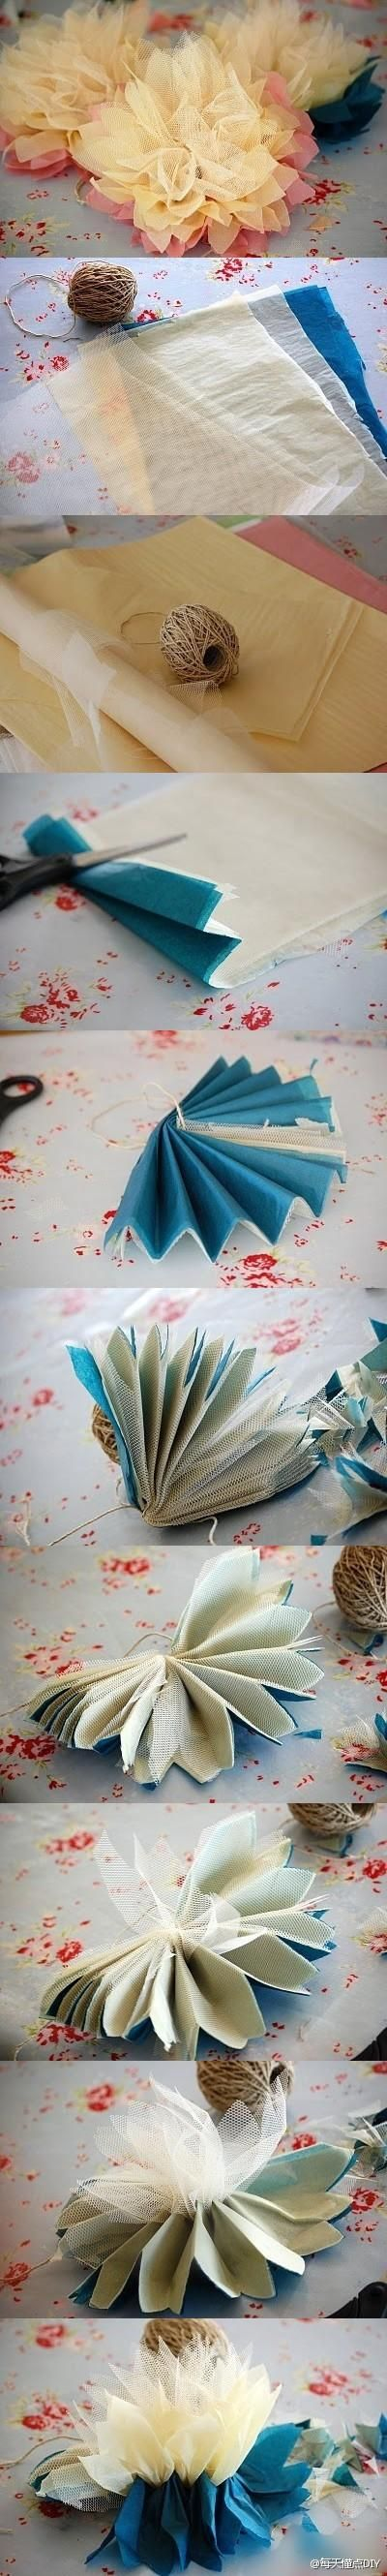 Cute flowers made with tissue paper and tule. Looks delicate and different